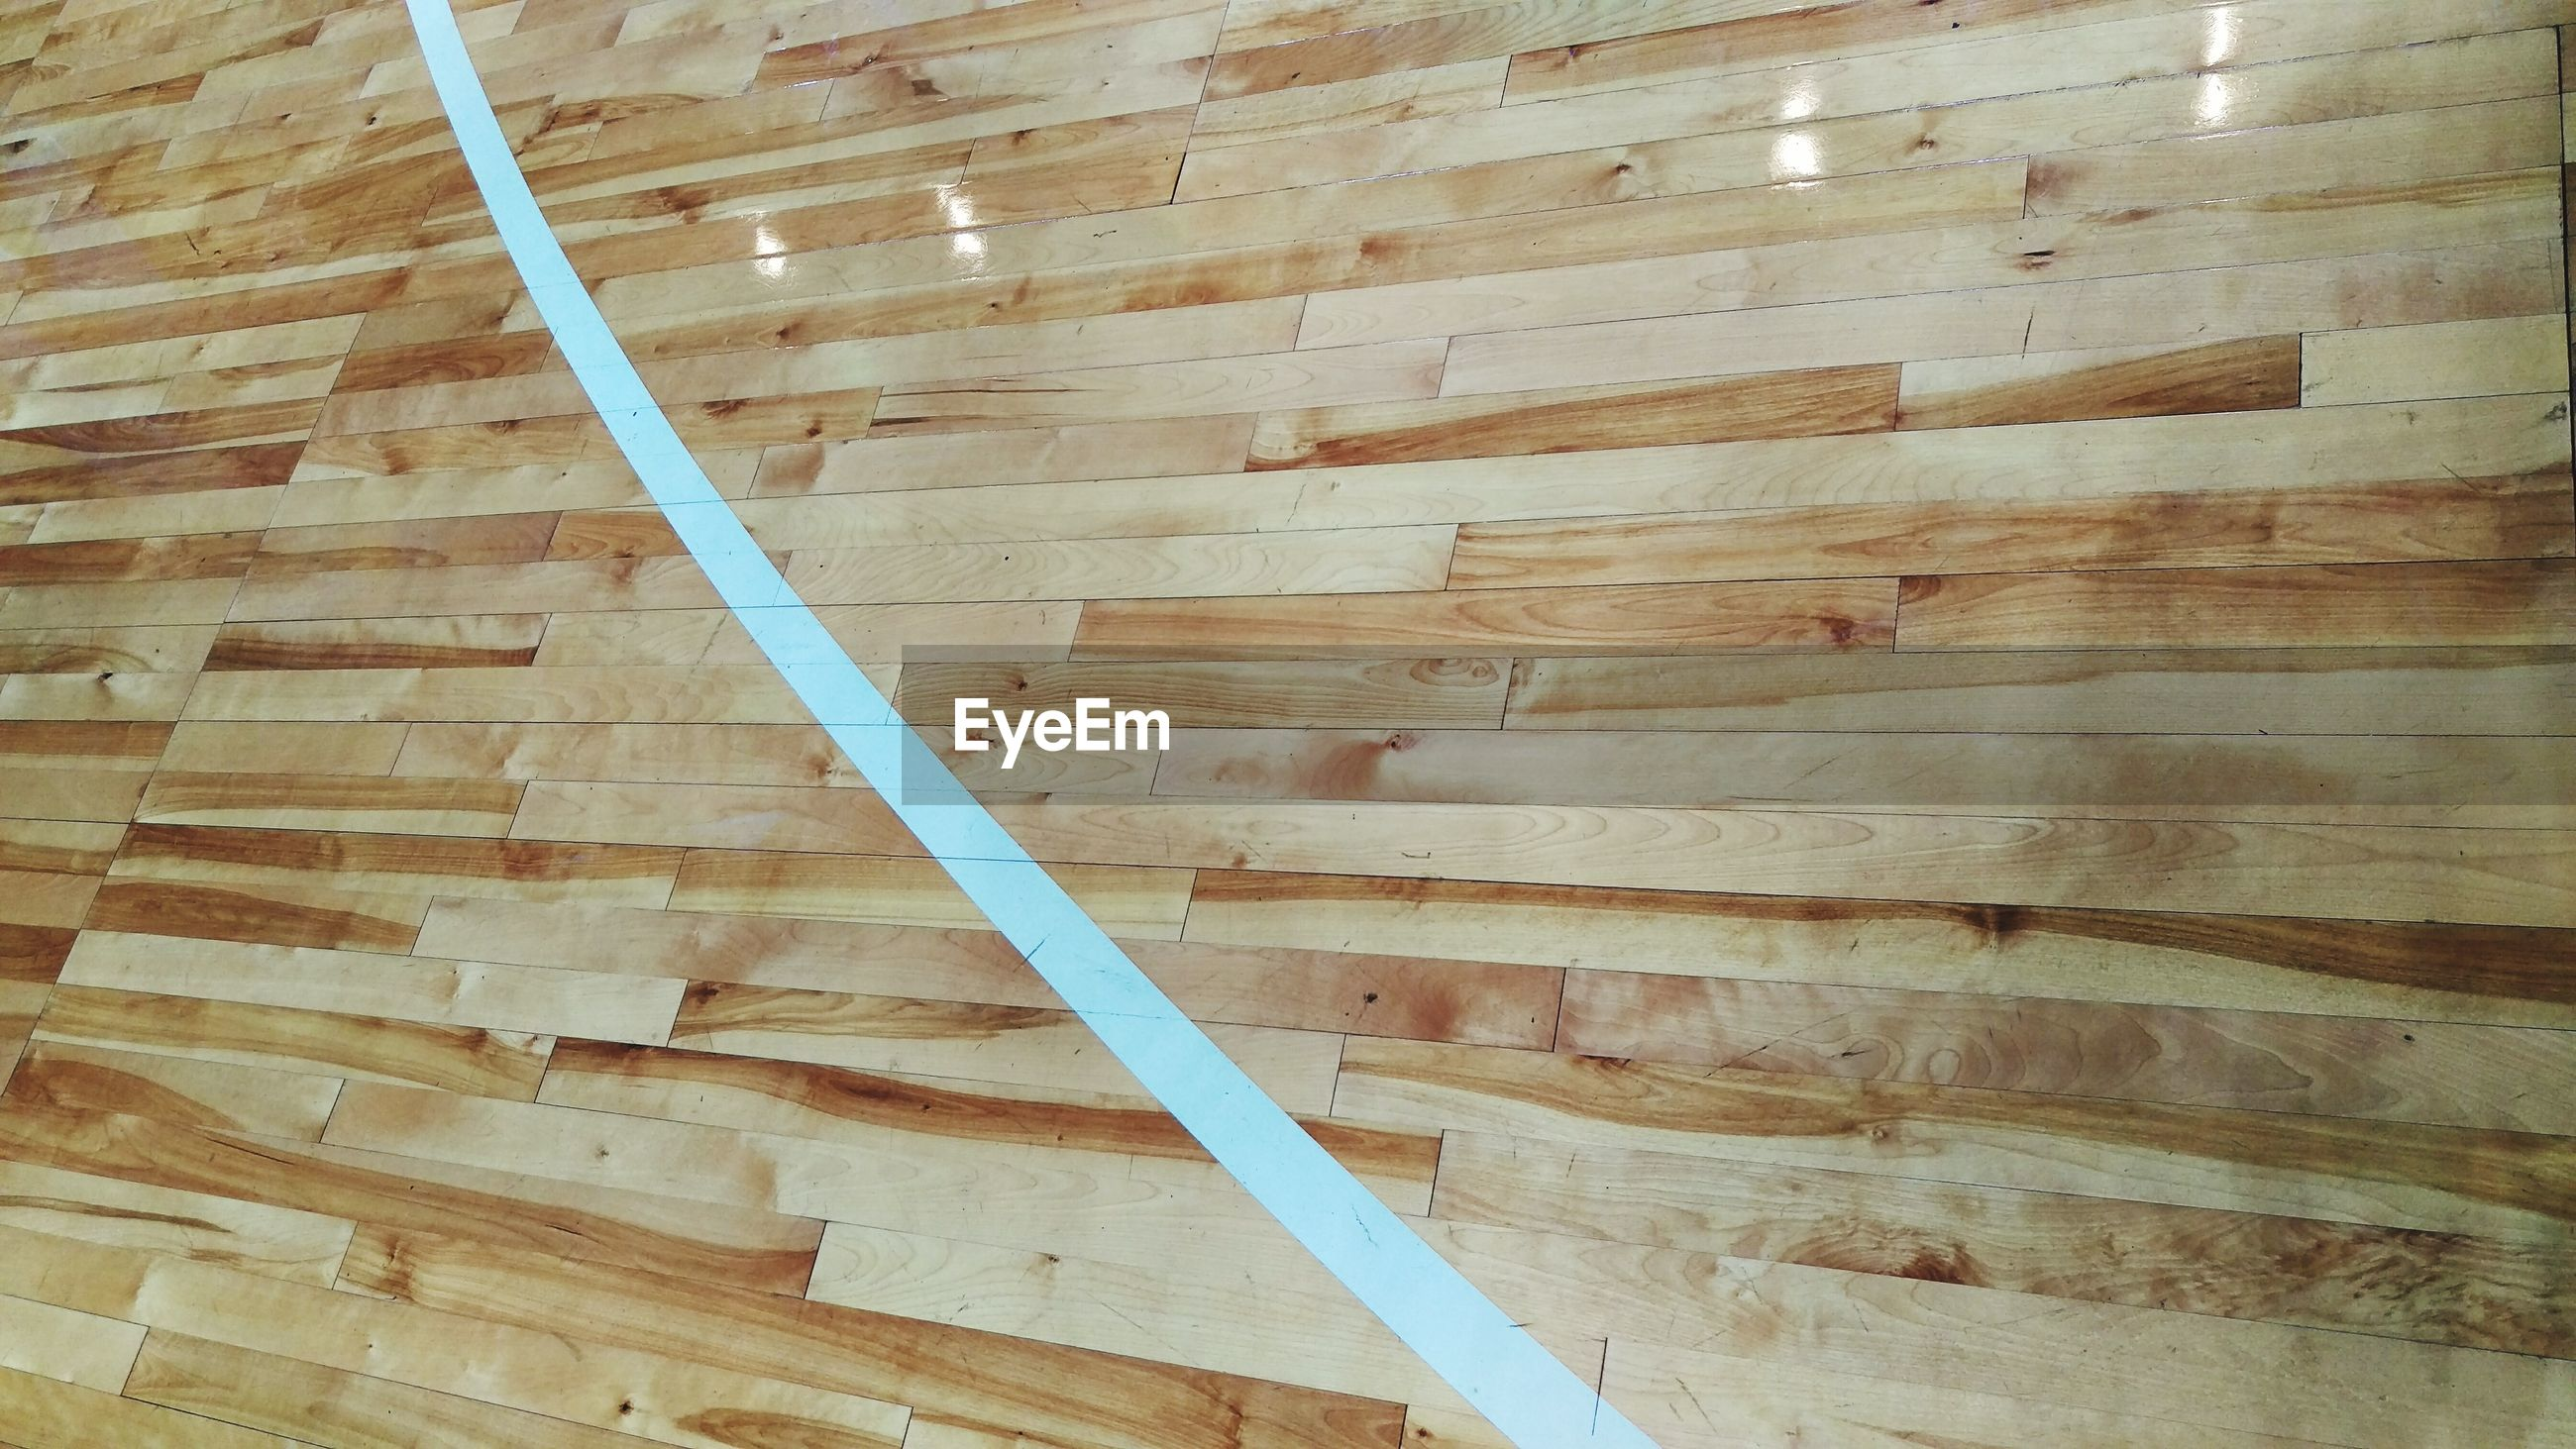 High angle view of wooden floor in basketball court